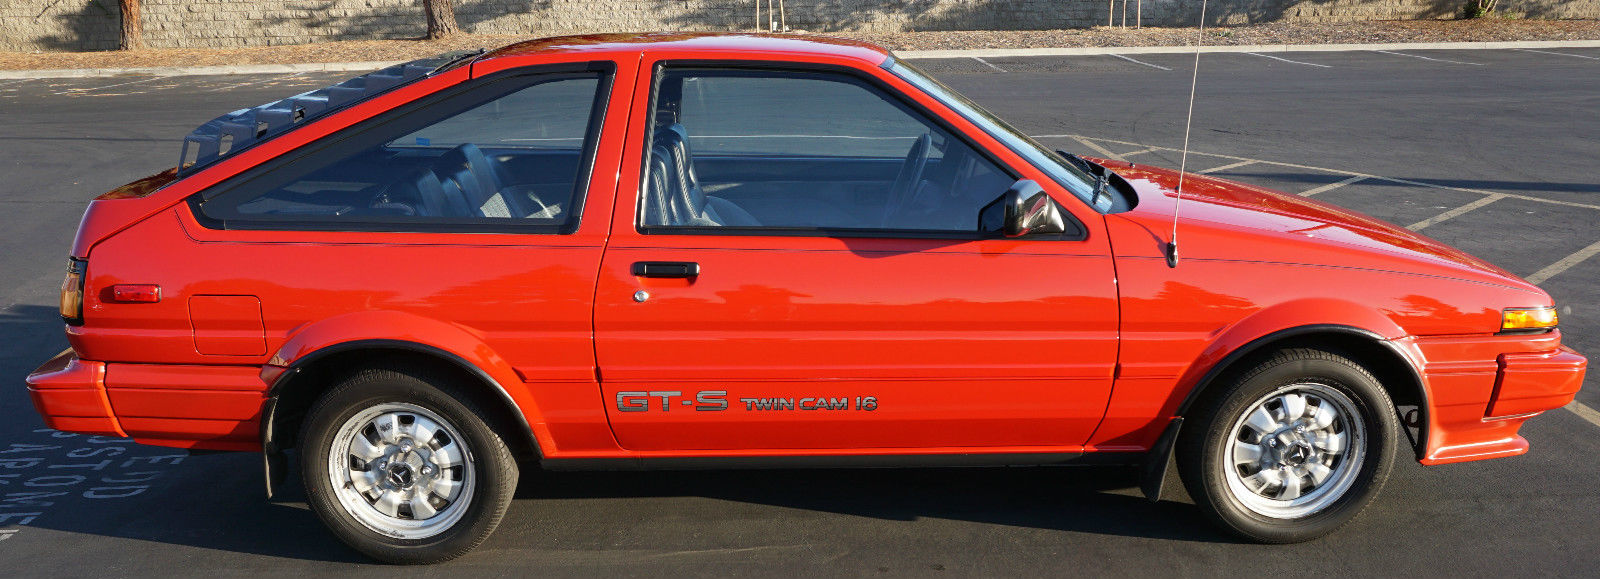 For the Purist Drifter: 1986 Toyota Corolla Sport GT-S for Sale on ...